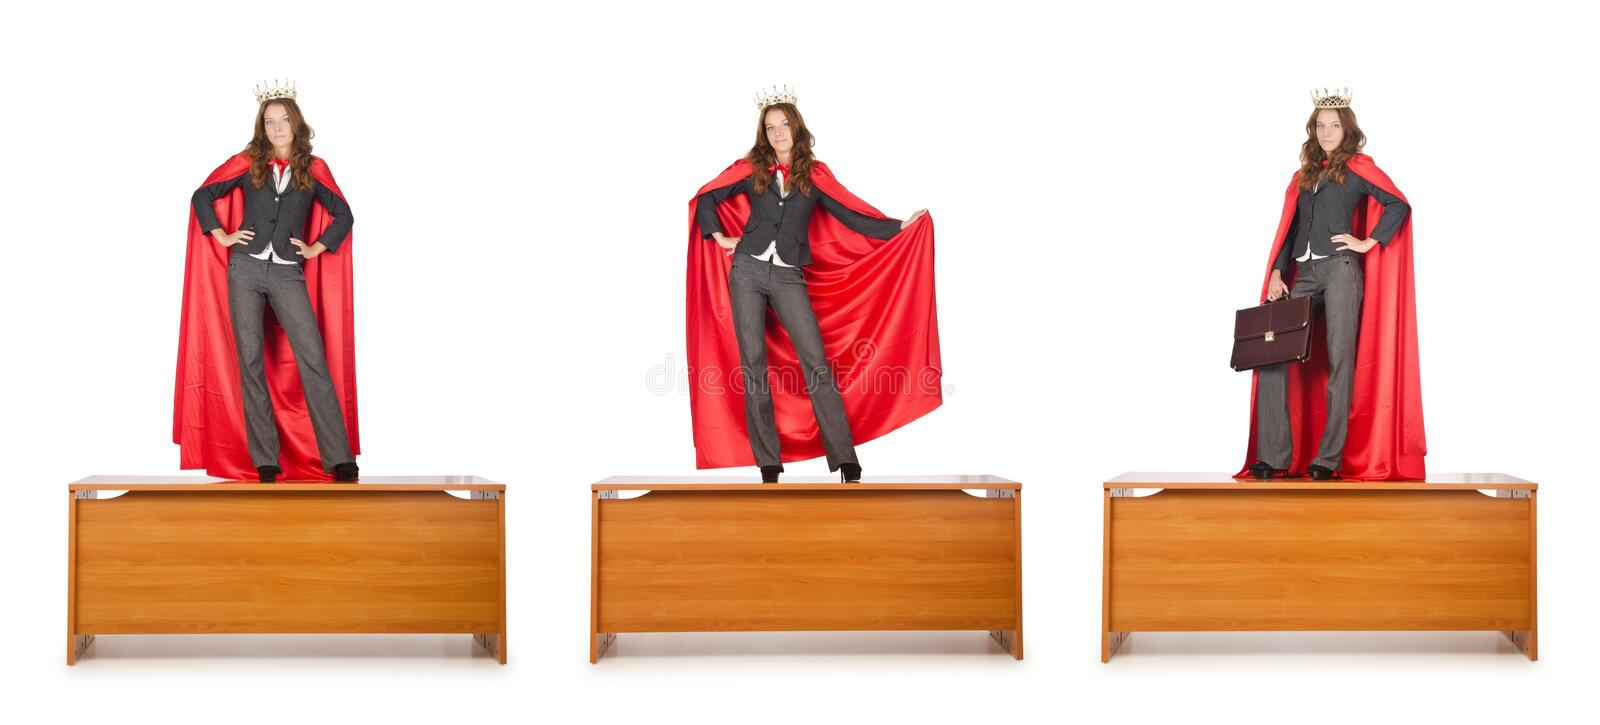 The queen businessman standing on the desk. Queen businessman standing on the desk royalty free stock photography